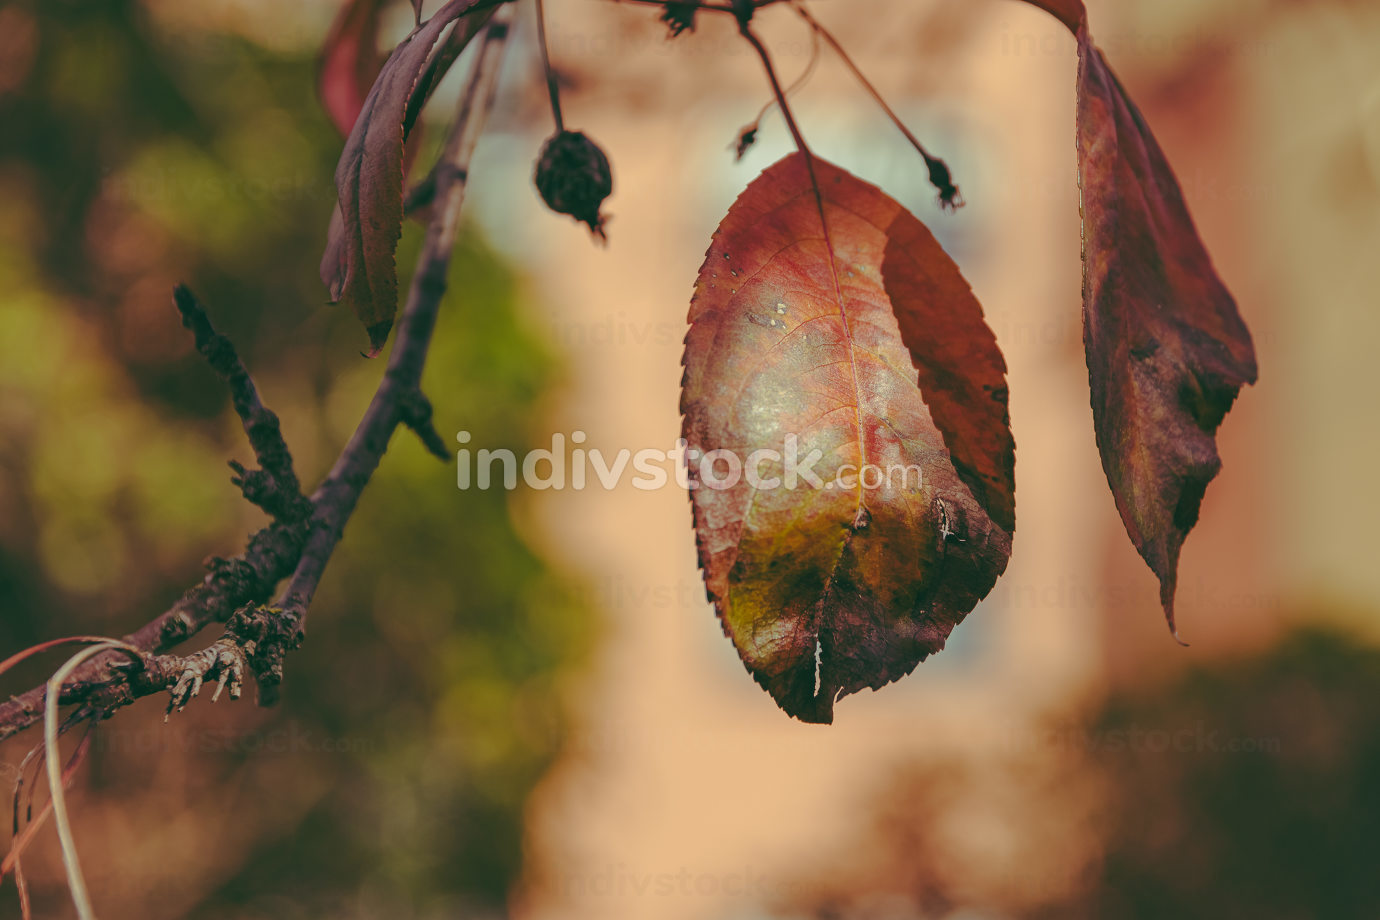 deciduous leaf on a branch in autumn